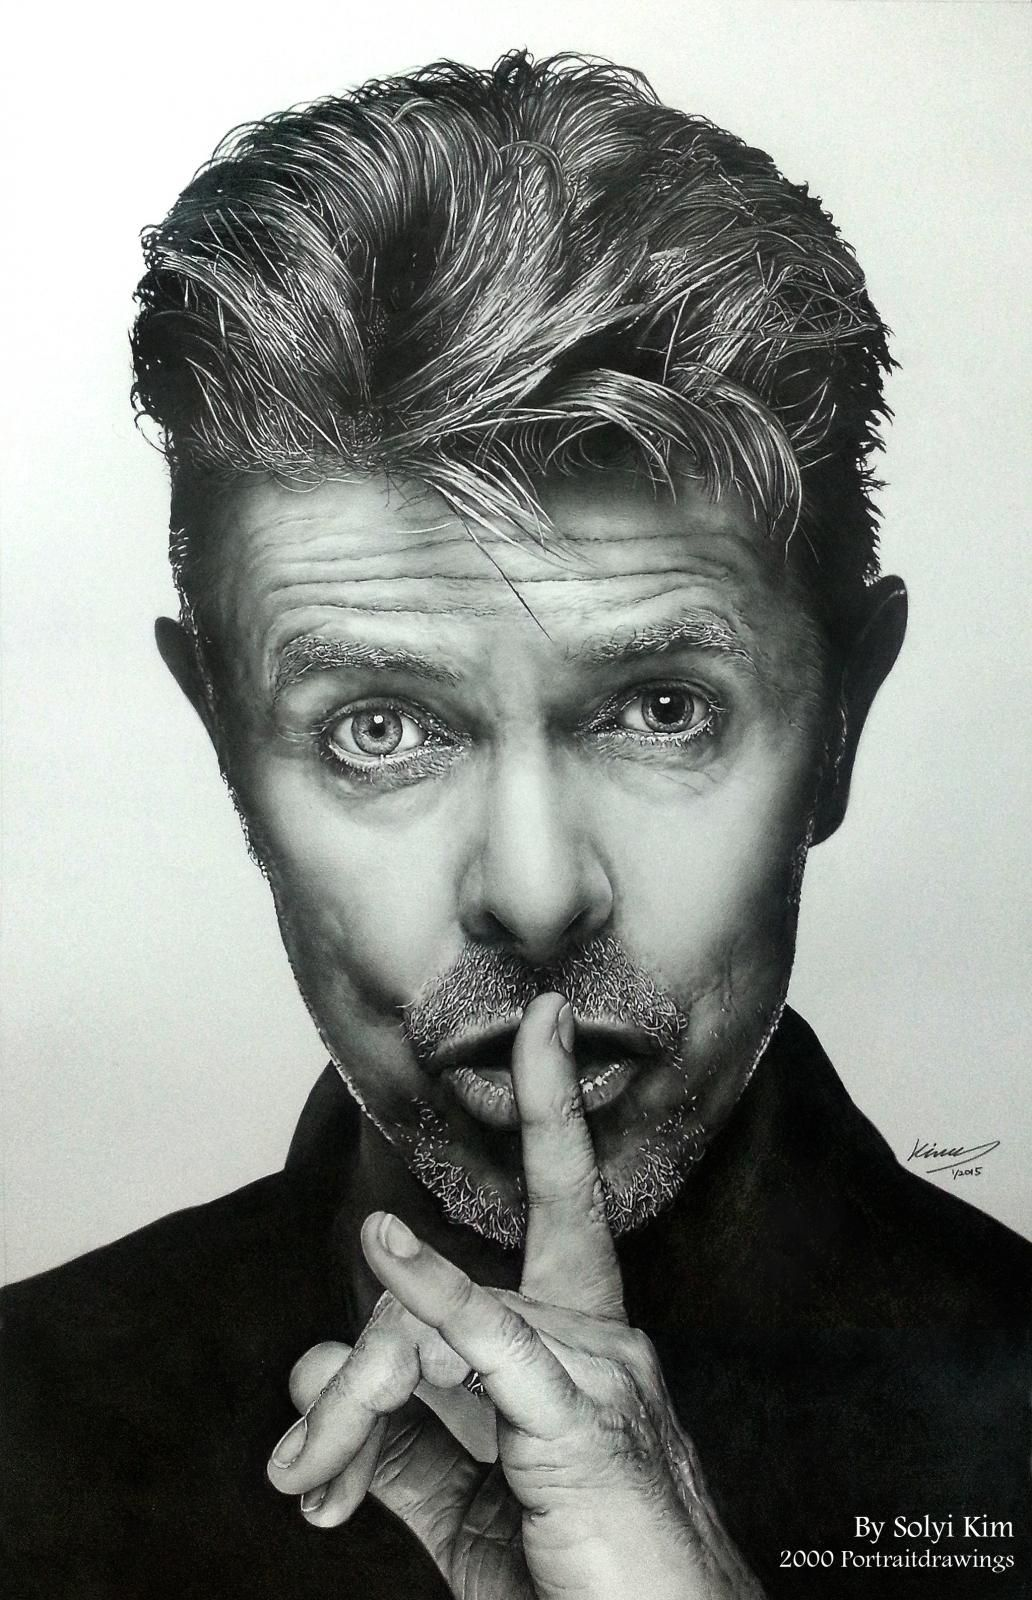 portraits of david bowie by solyi kim hb 2b pencil on paper 385 mm x 605 mm david bowie. Black Bedroom Furniture Sets. Home Design Ideas